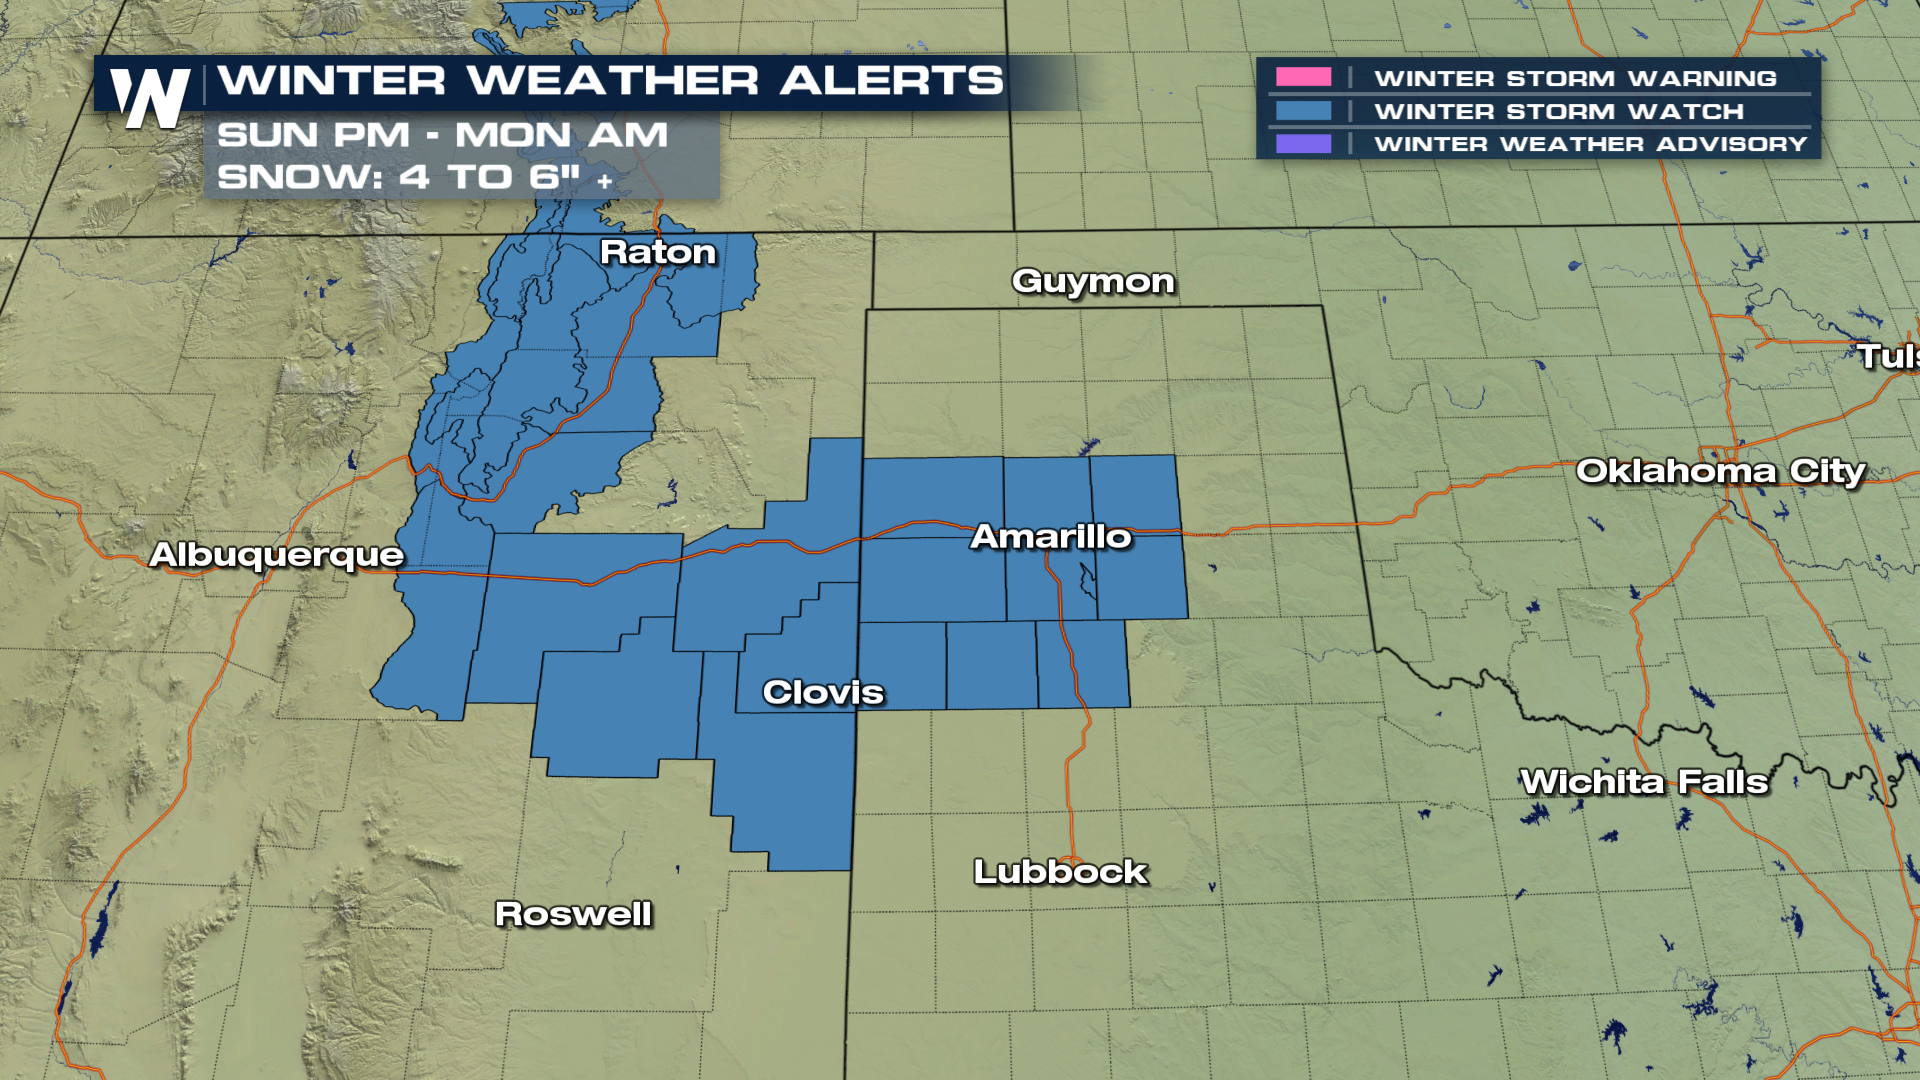 Sunday Snow For The Rockies And The Central U S  - WeatherNation